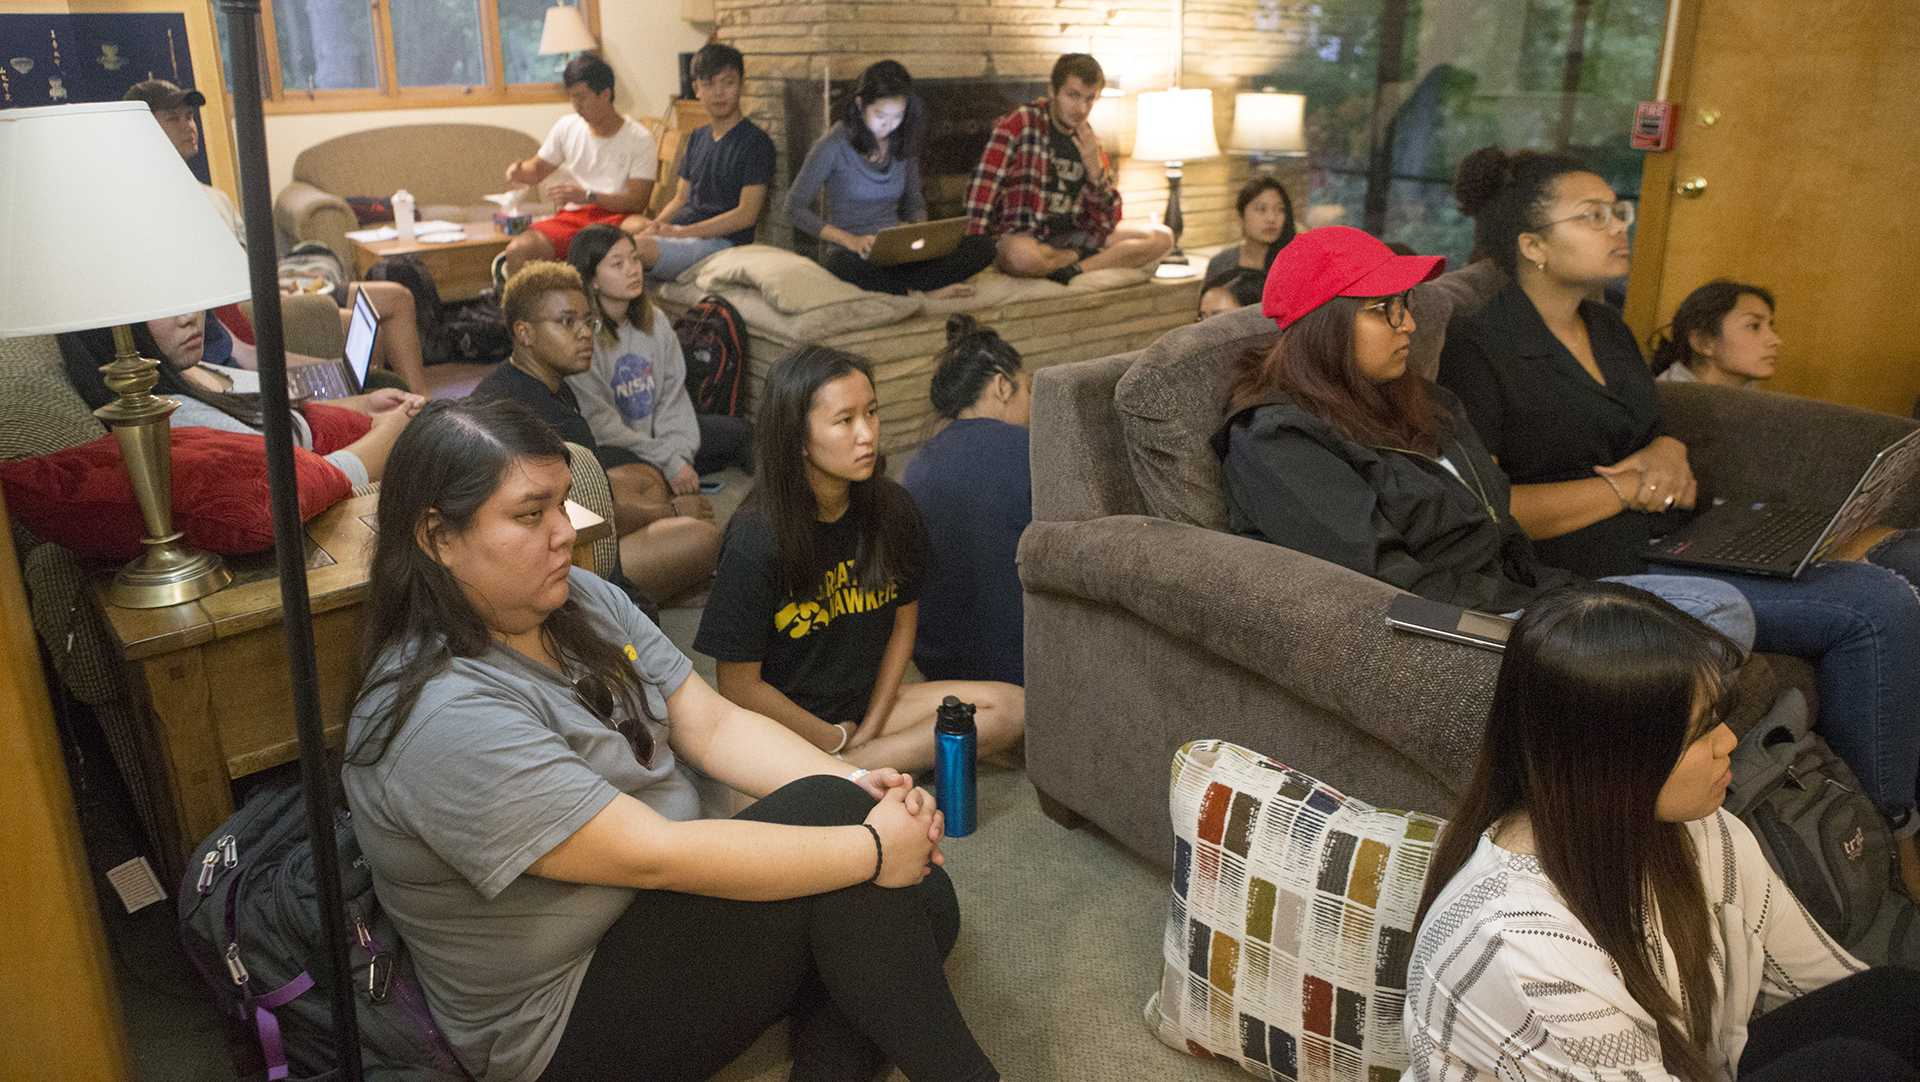 FILE - Students converse during the UISG Asian American Discussion Circle at the Asian Pacific American Cultural Center on Monday, Sept. 18, 2017. The event served as an outlet for Asian UI students to explore identity and express issues related to Asian students. (Lily Smith/The Daily Iowan)